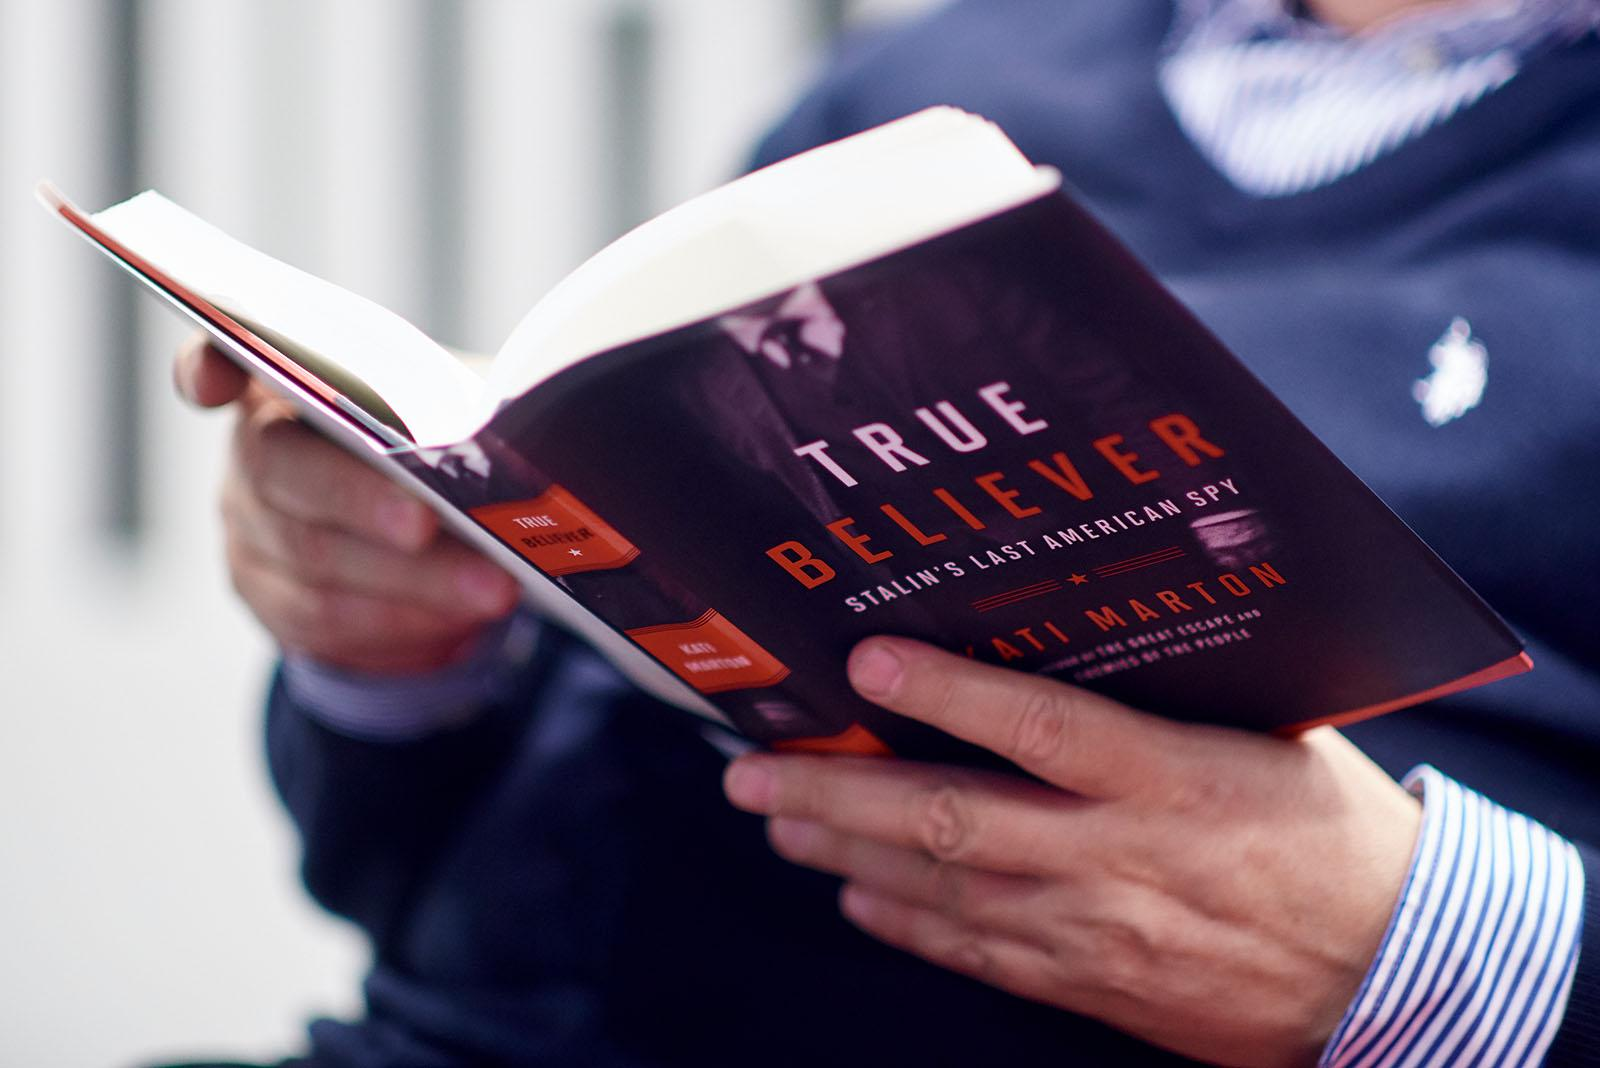 """CEU hosted the launch of Kati Marton's """"True Believer: Stalin's Last American Spy,"""" the story of Noel Field, a Harvard-educated U.S. State Department employee turned hard-core Stalinist on October 25. Photo: CEU / Daniel Vegel"""